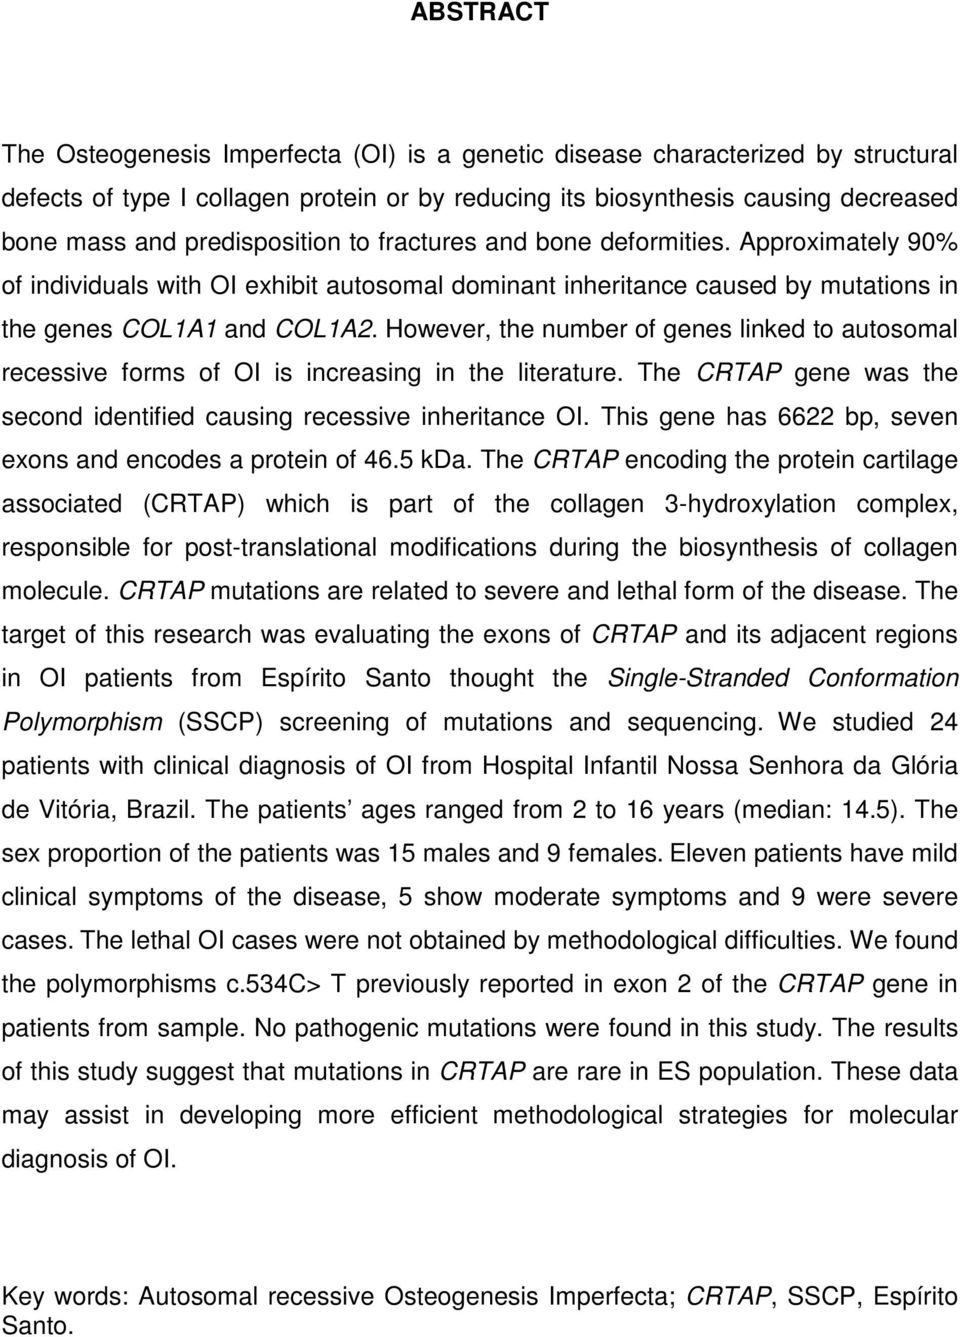 However, the number of genes linked to autosomal recessive forms of OI is increasing in the literature. The CRTAP gene was the second identified causing recessive inheritance OI.